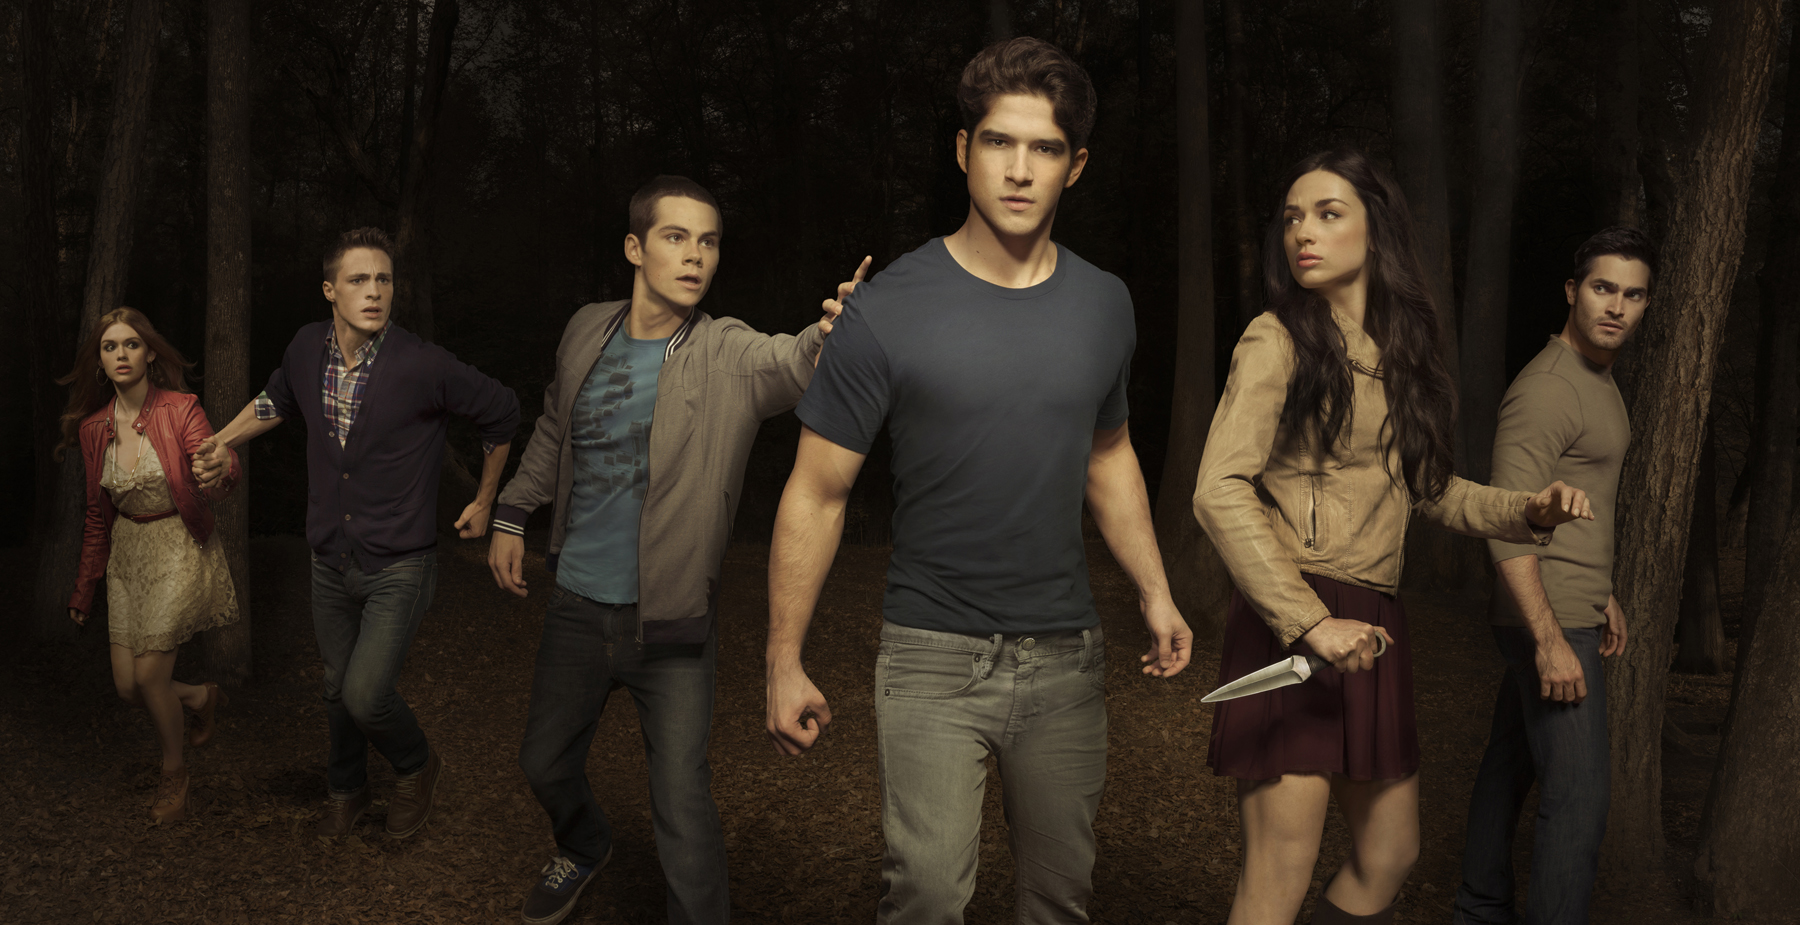 Teen Wolf Cast Season 4